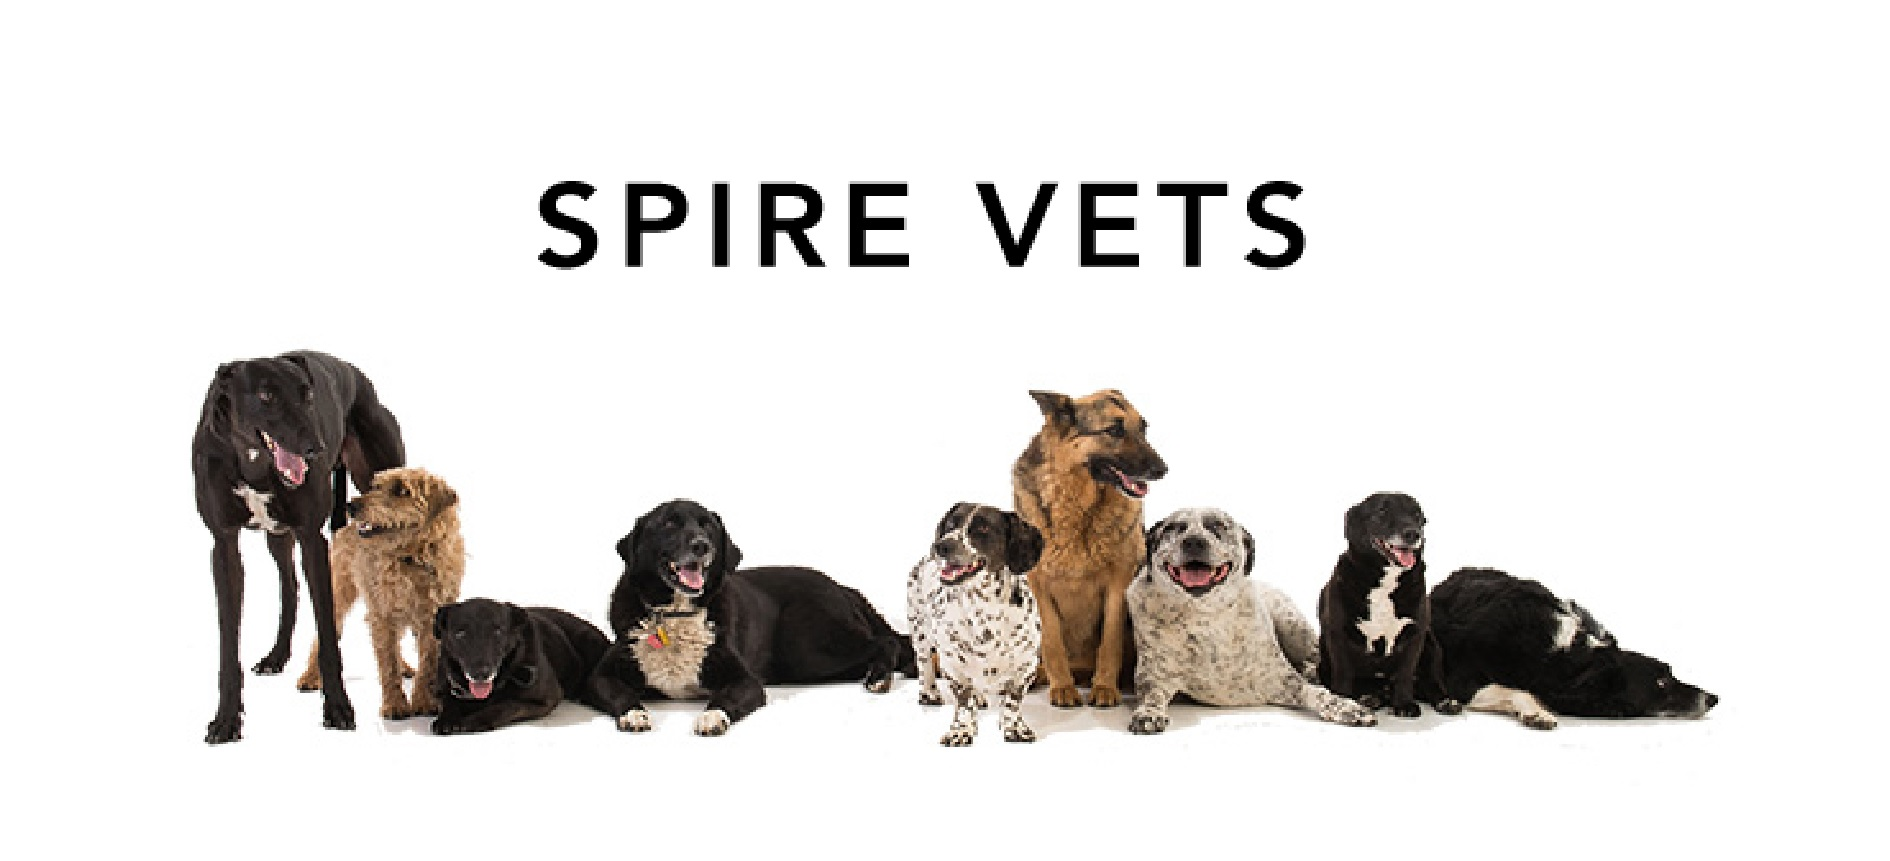 http://www.spirevets.co.uk/home.html logo